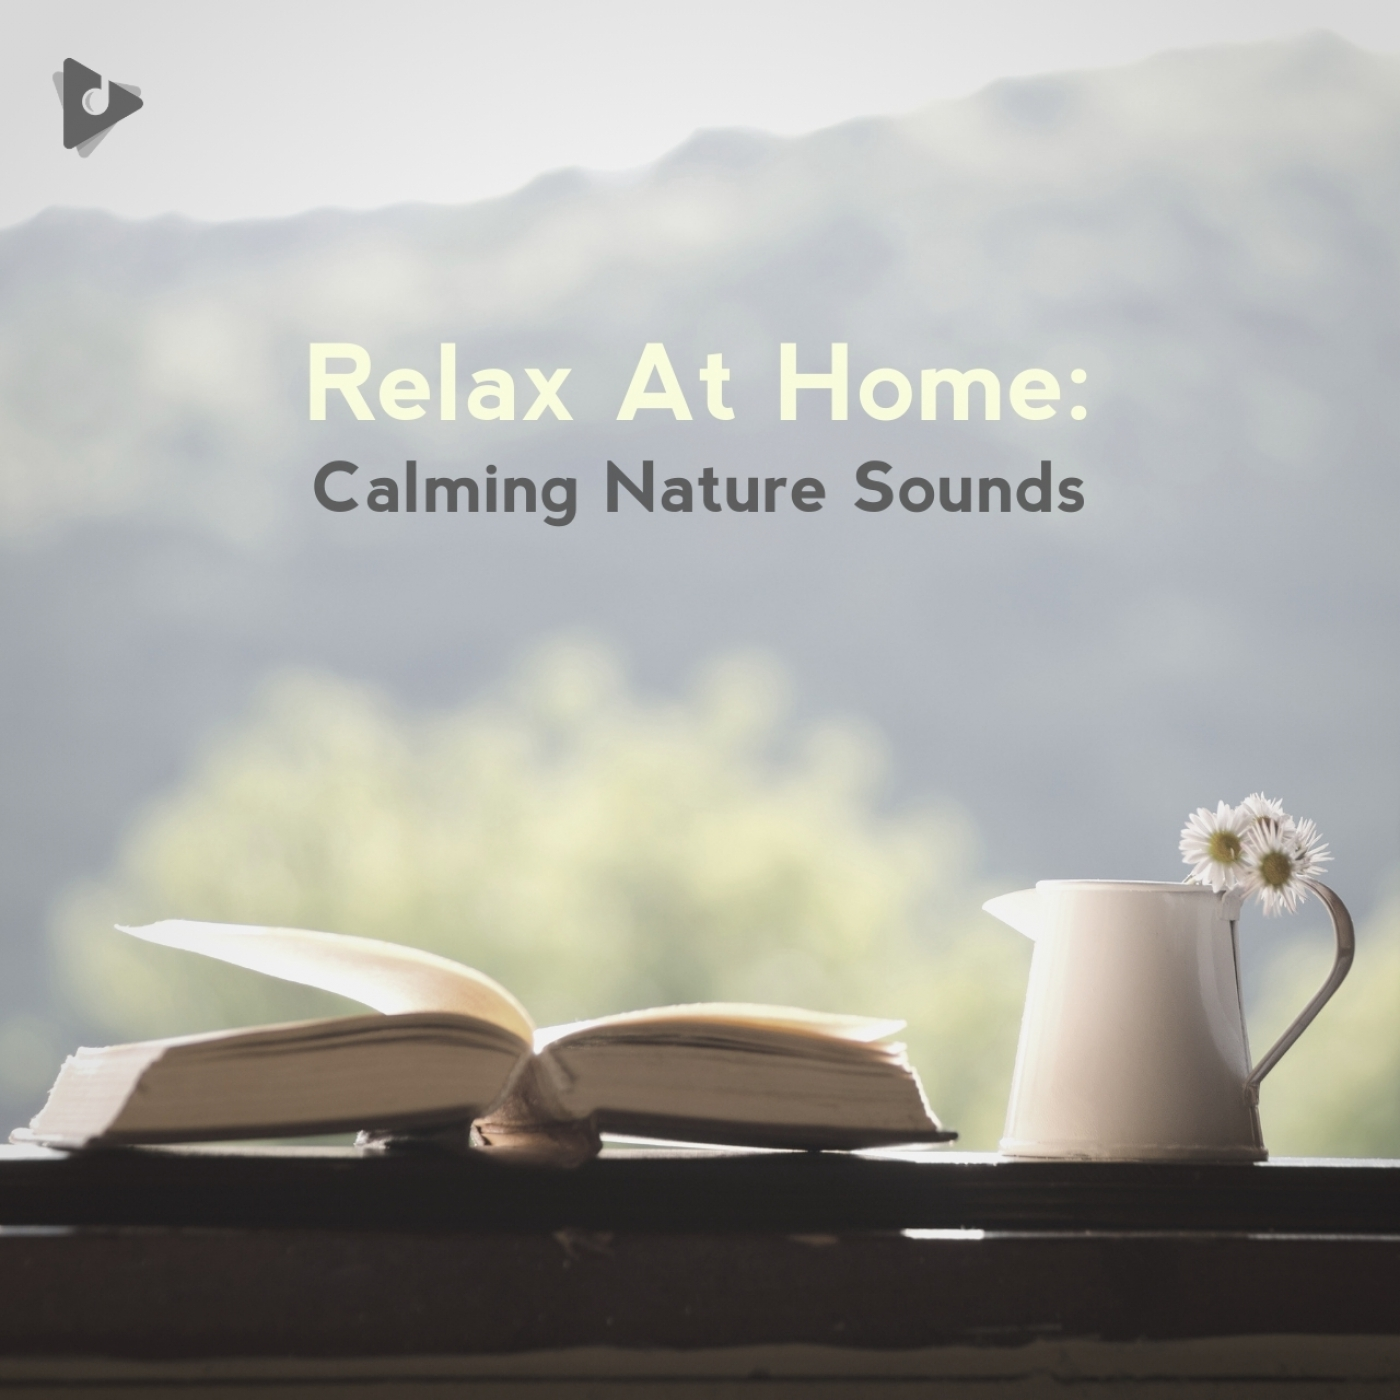 Stay-at-Home: Calming Nature Sounds